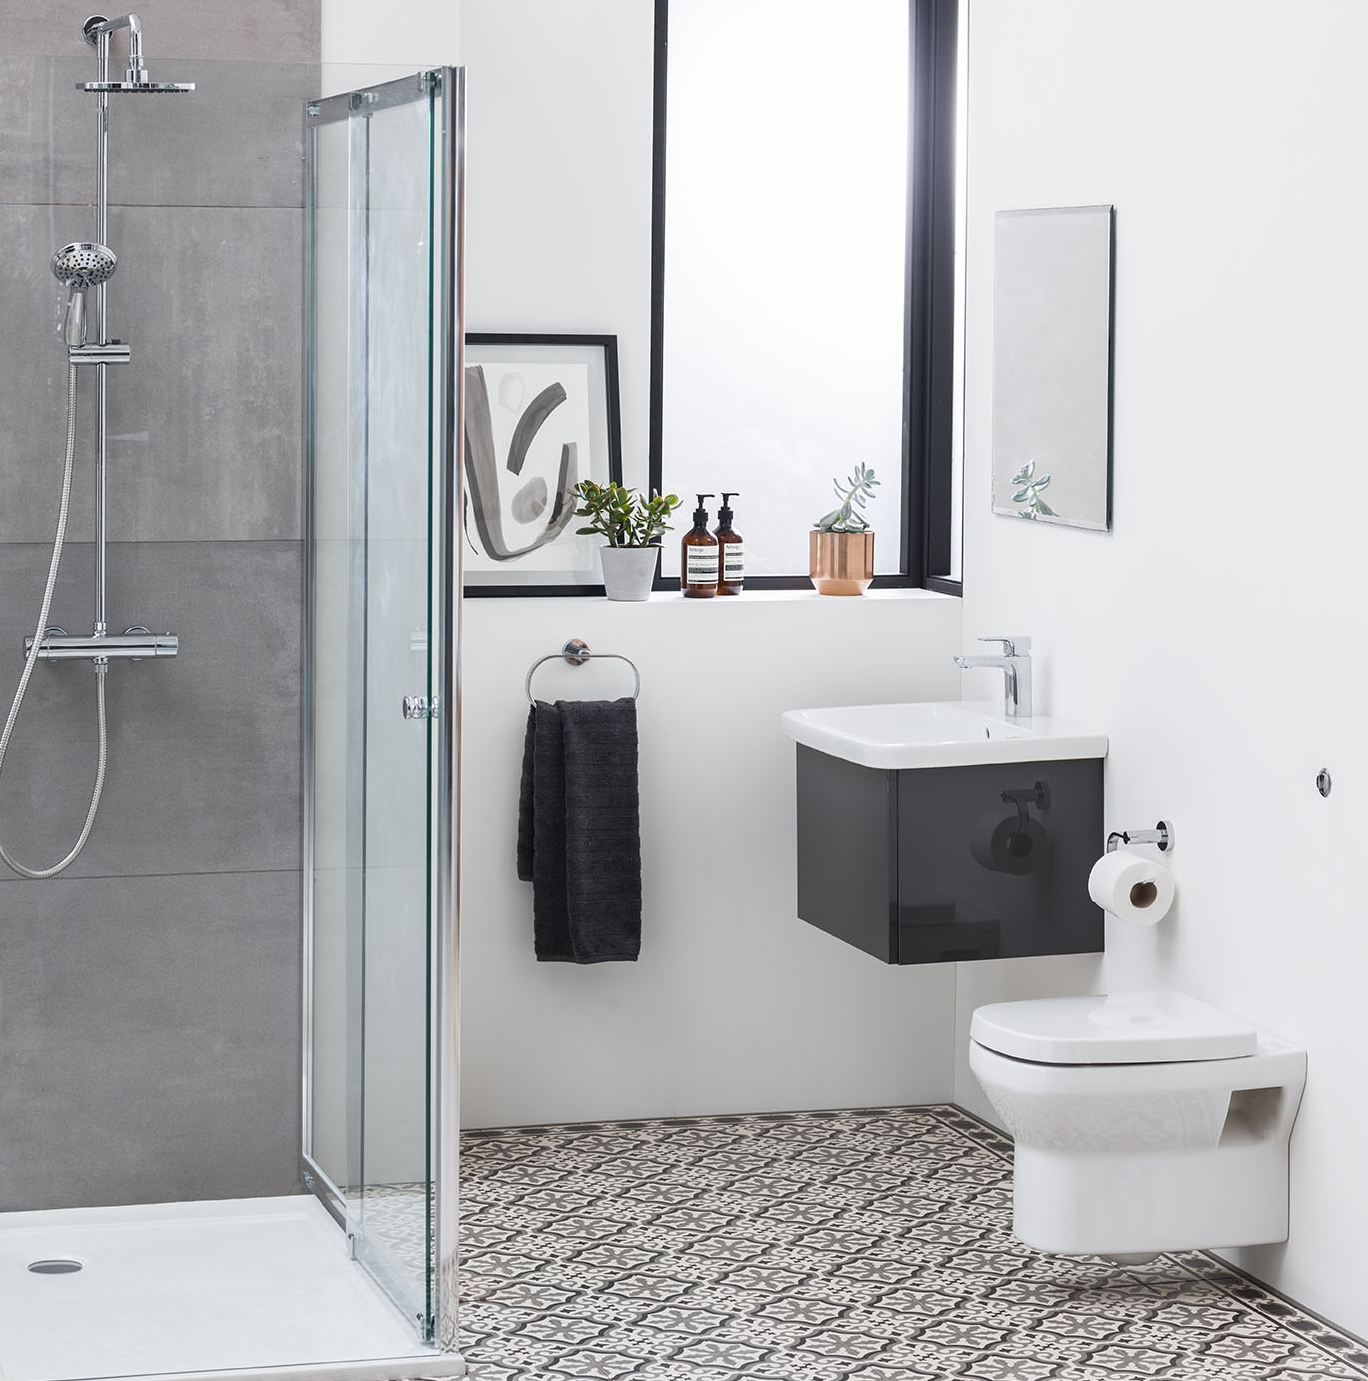 THIRTY6 - The Thirty6 range has been designed specifically for the trade and residential sectors, with an emphasis on the realities of designing for smaller bathroom spaces in everyday UK homes. Every product in the Thirty6 portfolio is purpose-designed and handcrafted to optimise compact bathroom areas, whilst still offering the flexibility to look equally at home in larger rooms, allowing you to create a consistent look across your entire property in family bathrooms, en-suites and cloakrooms.Visit the Thirty6 Website